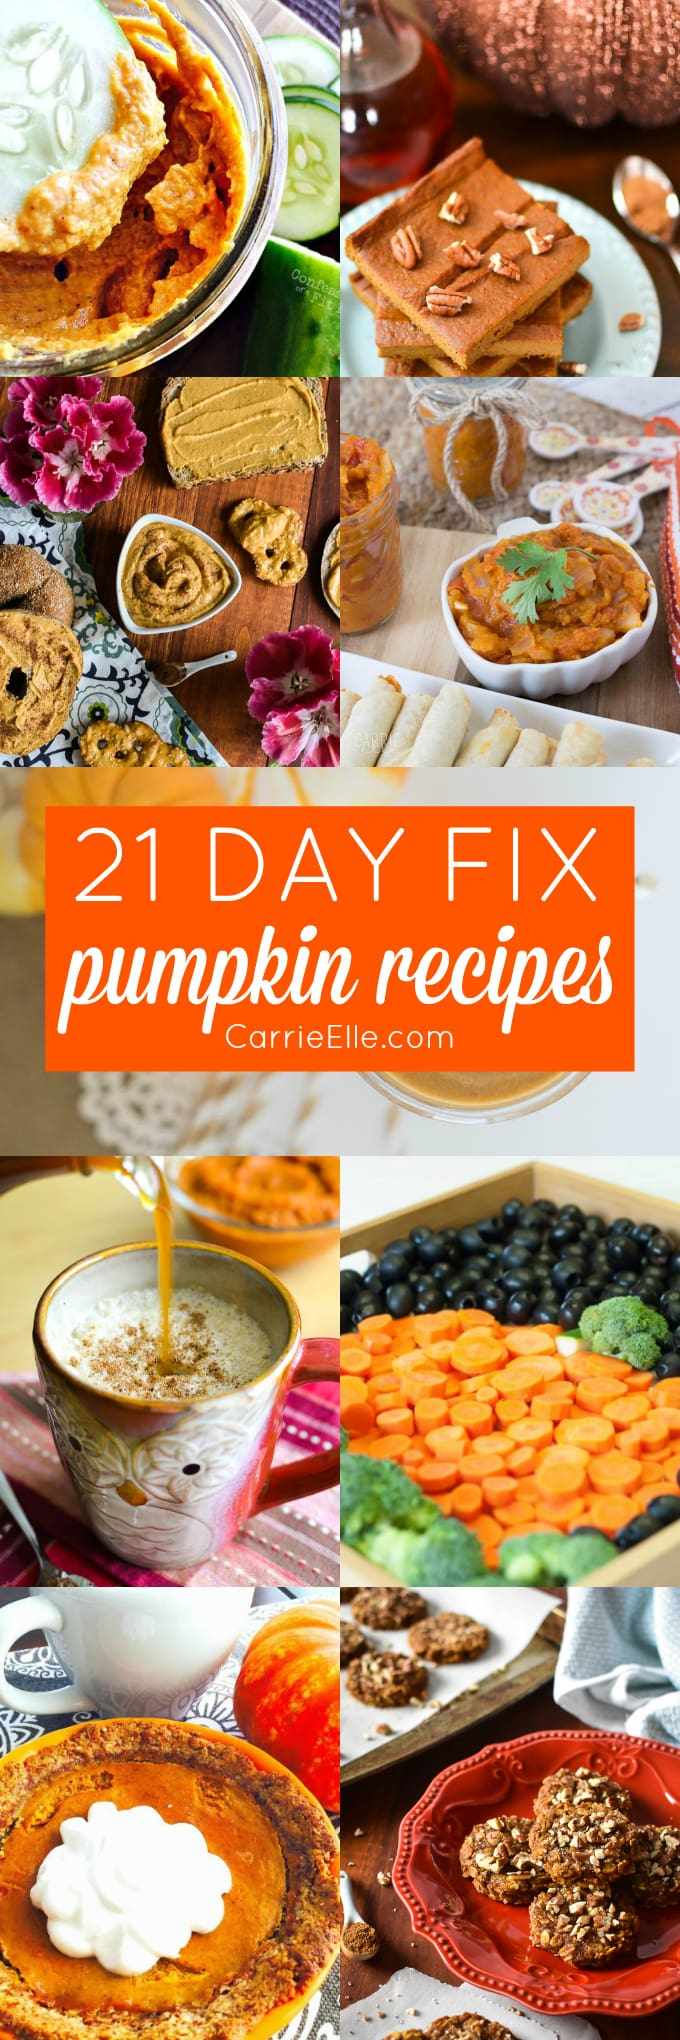 21 Day Fix Pumpkin Recipes